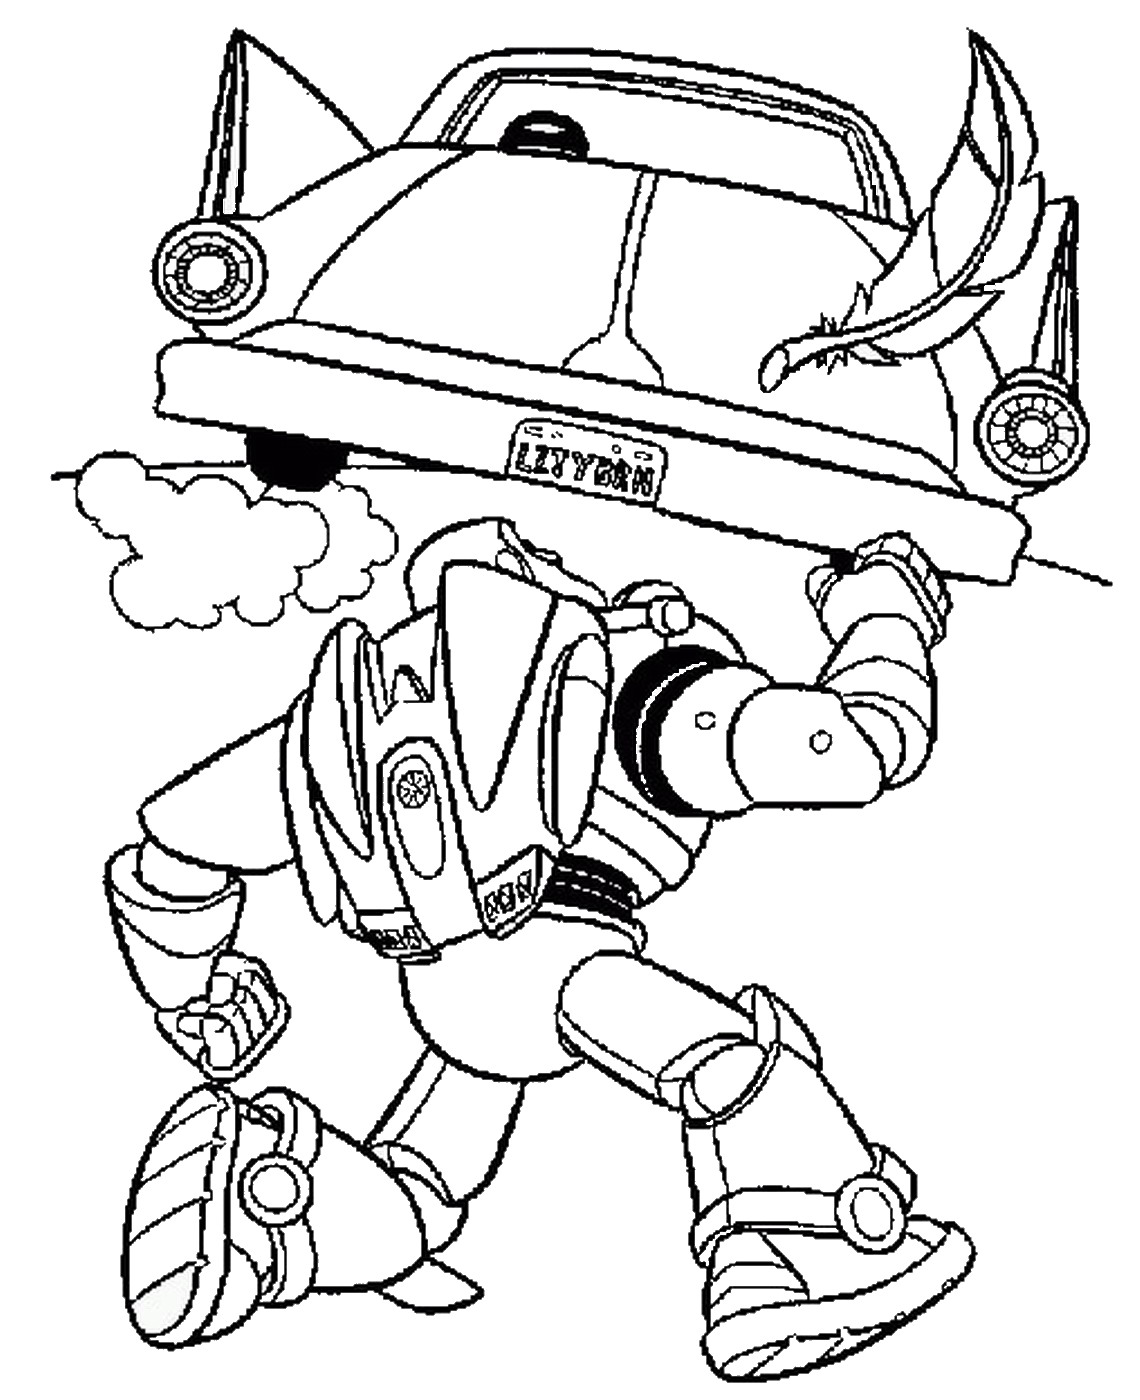 toy story 2 pictures to colour toy story coloring pages pictures 2 story colour toy to